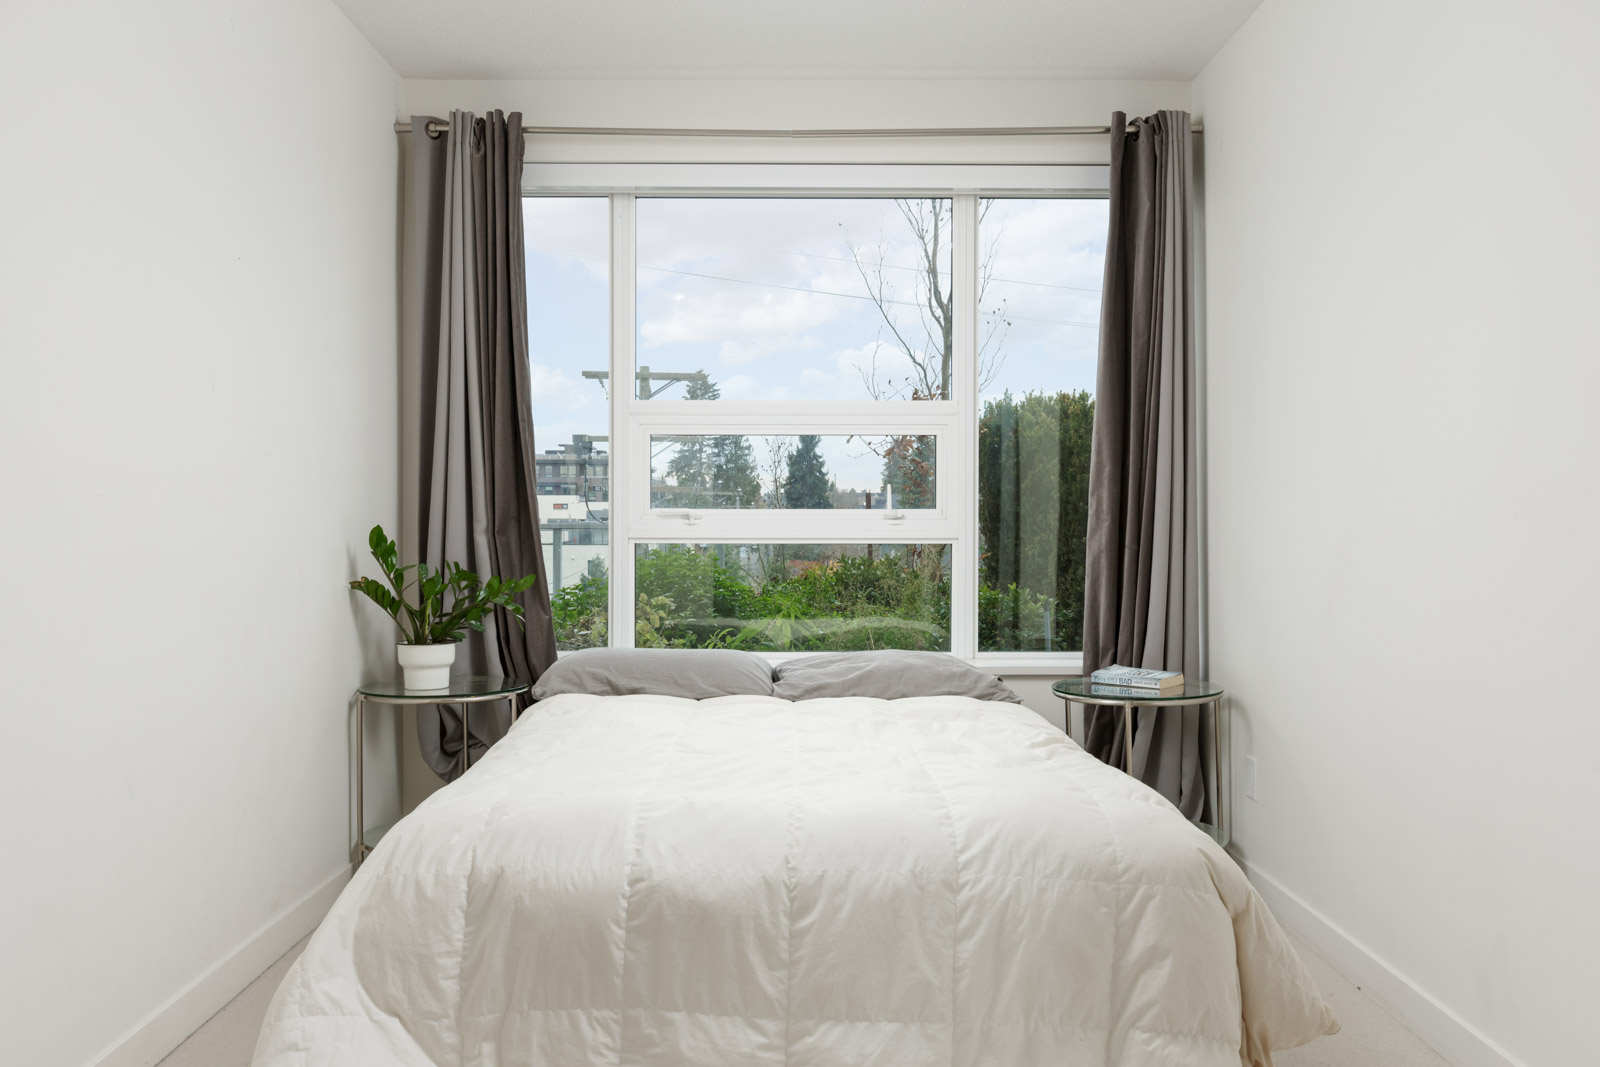 bed made with white sheets underneath window with open drapes to bright skies outside